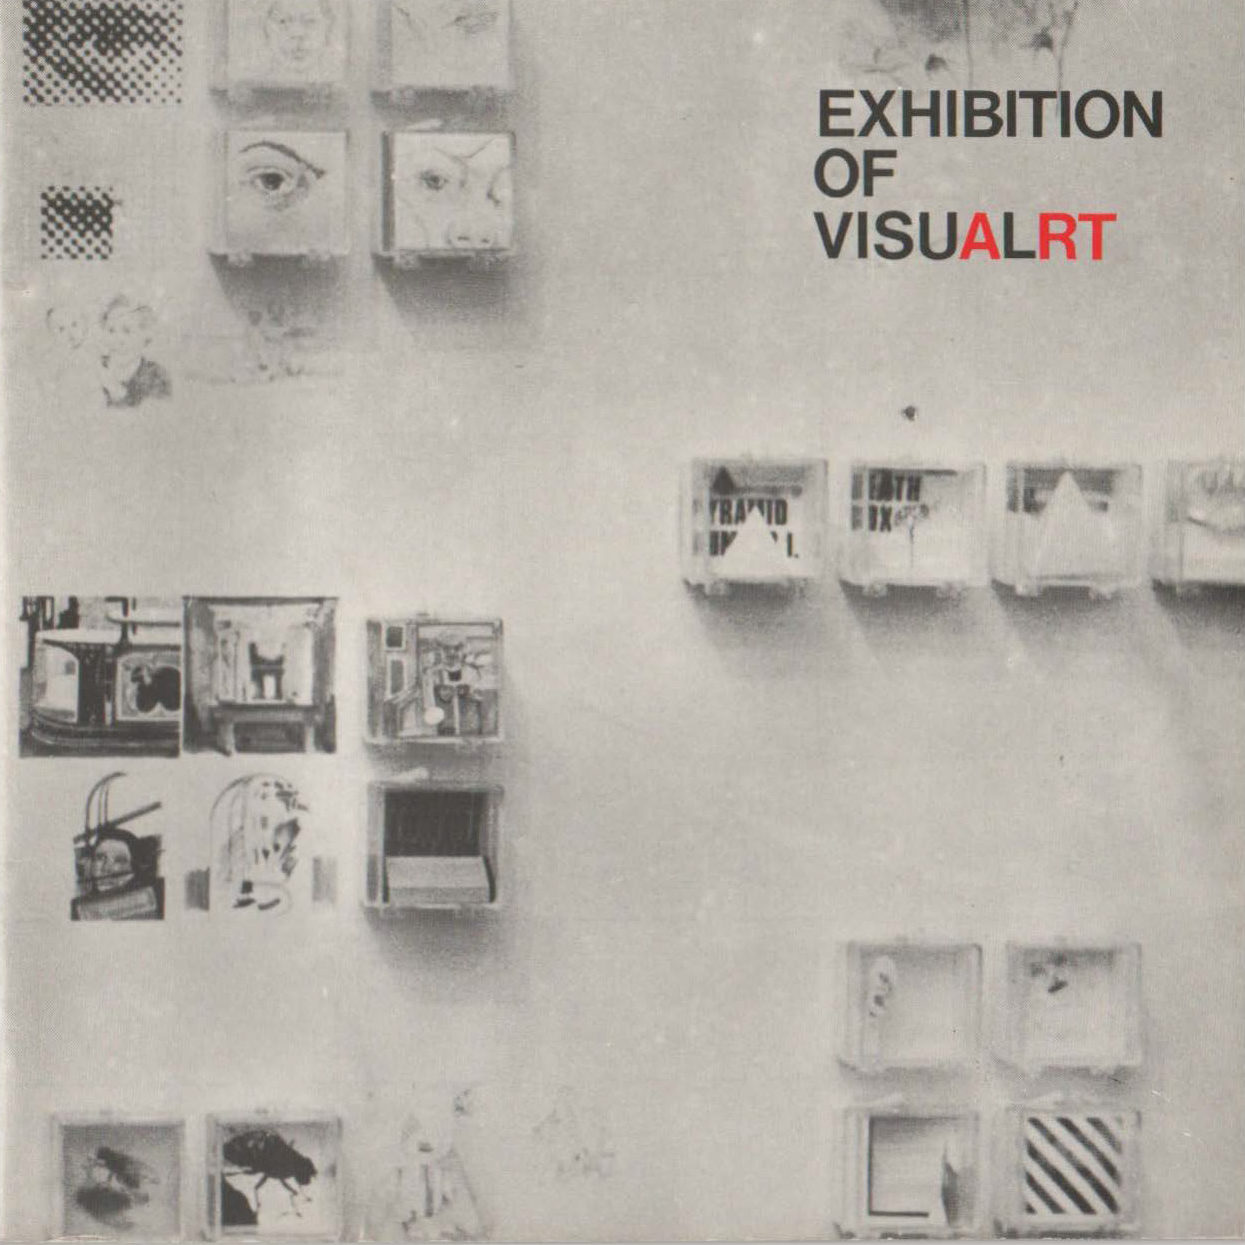 Exhibition of Visual Art 1979 Catalogue Cover